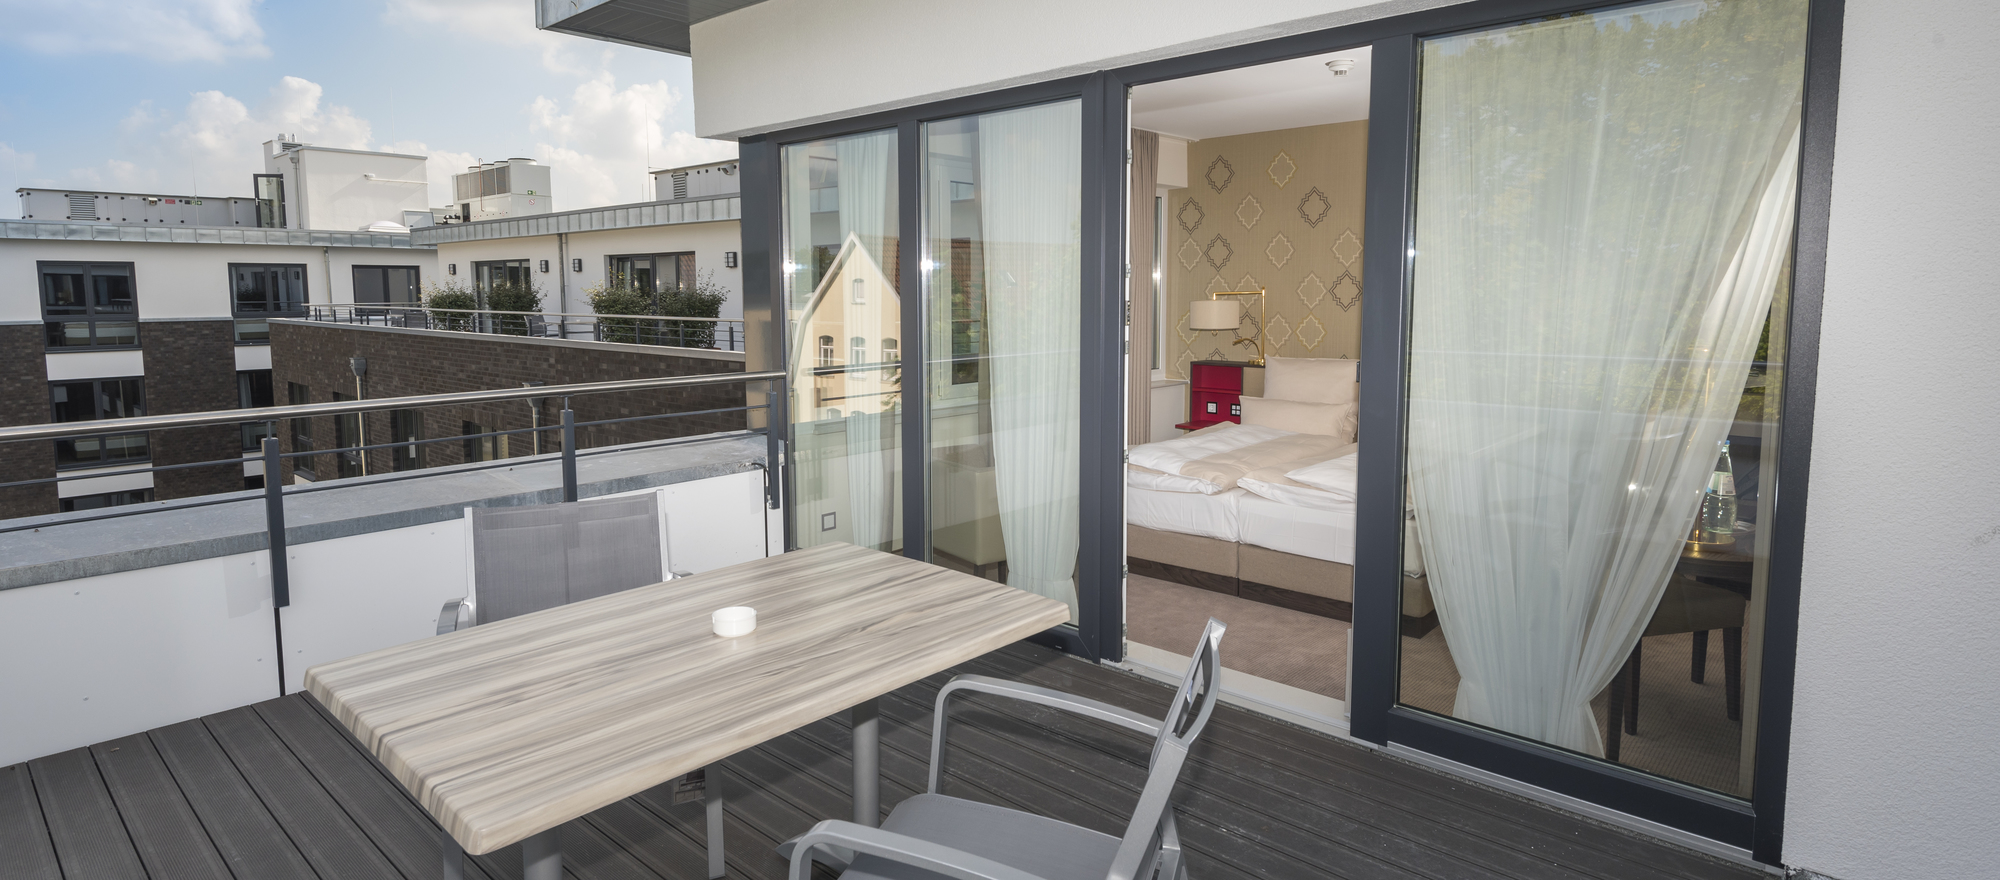 Beautiful hotel rooms with rooftop terrace at the Ringhotel Looken Inn in Lingen, 4-stars hotel in the Emsland